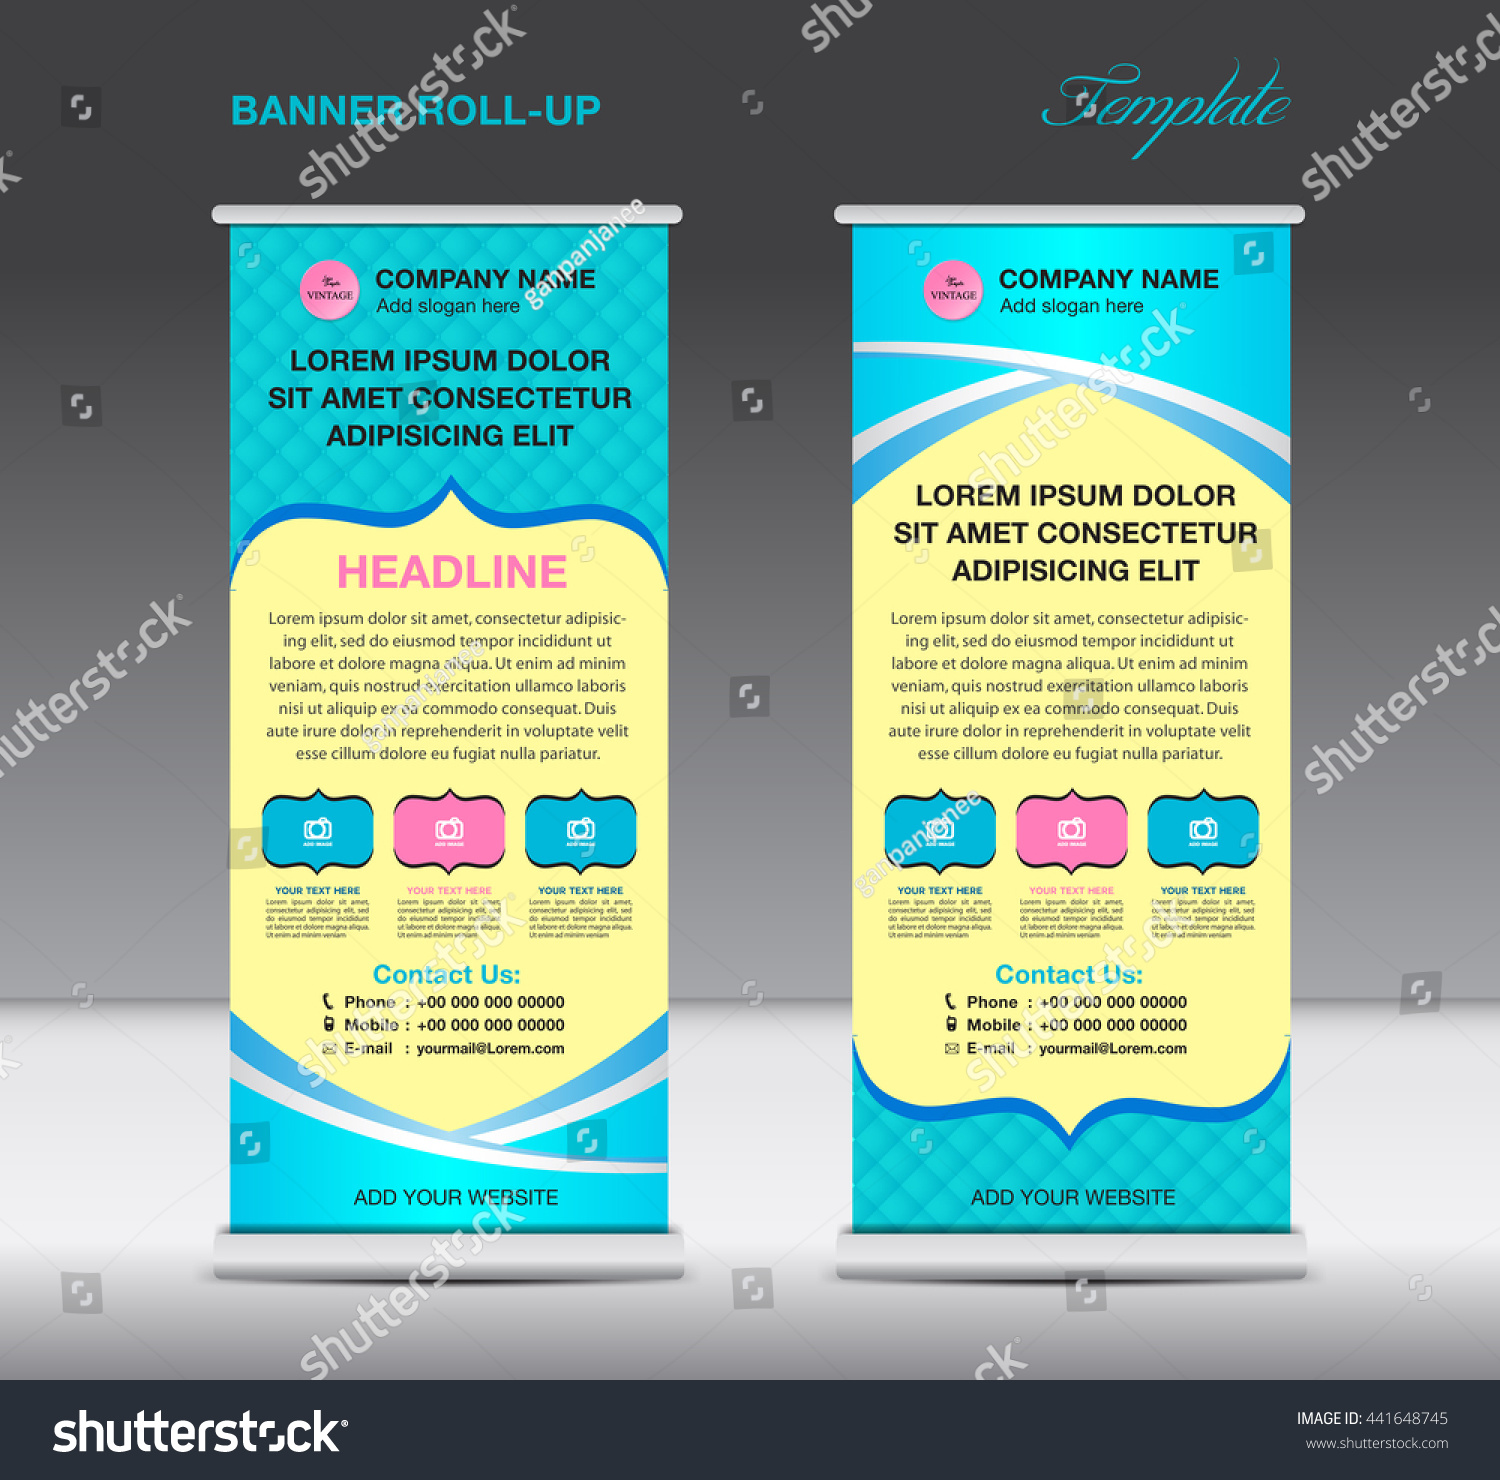 roll up banner stand template vintage design advertisement roll up banner stand template vintage design advertisement display flyer vector